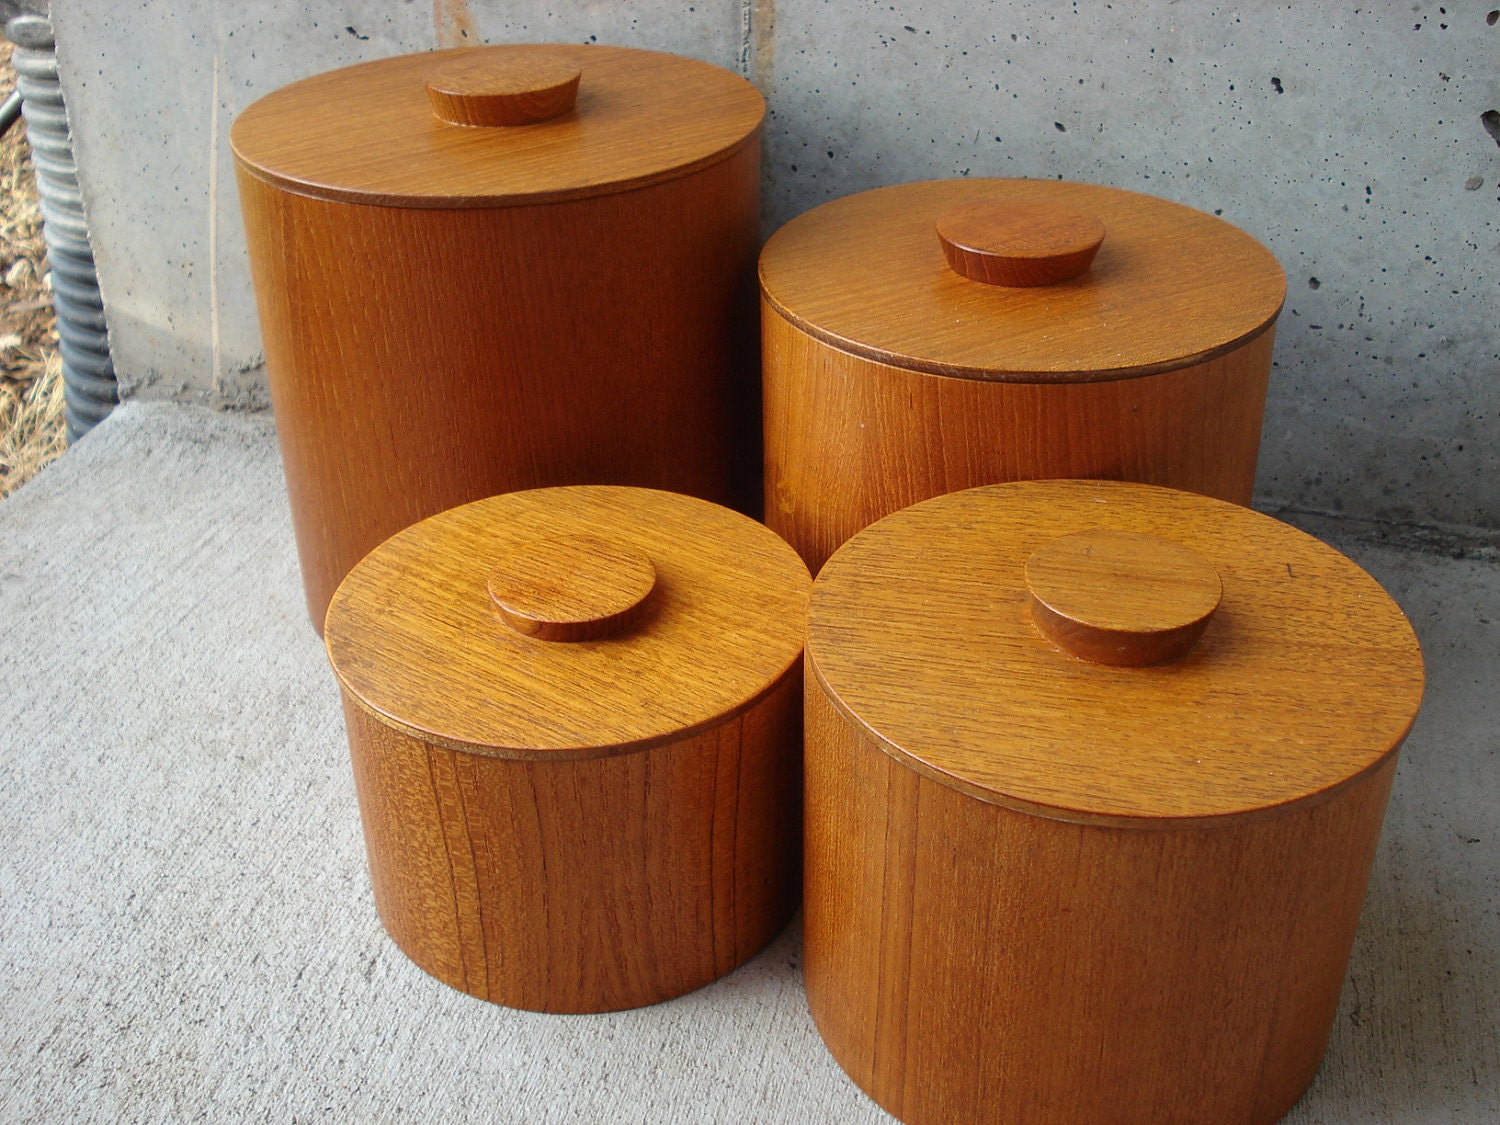 set of 4 all wood kitchen canister set by lkwhatthecatdraggedn